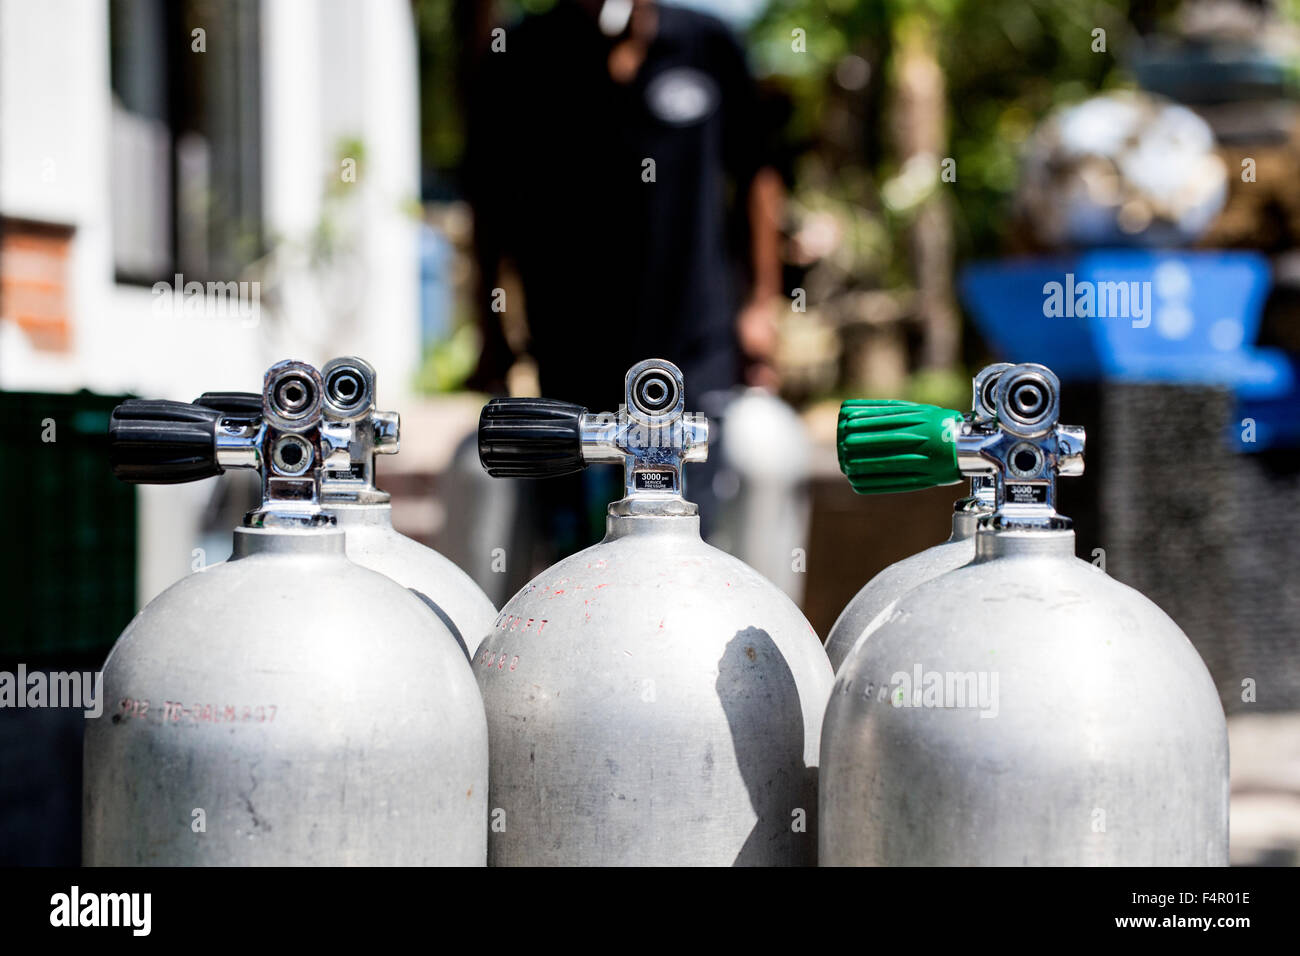 Scuba Tanks in the Sun at Dive Shop - Stock Image